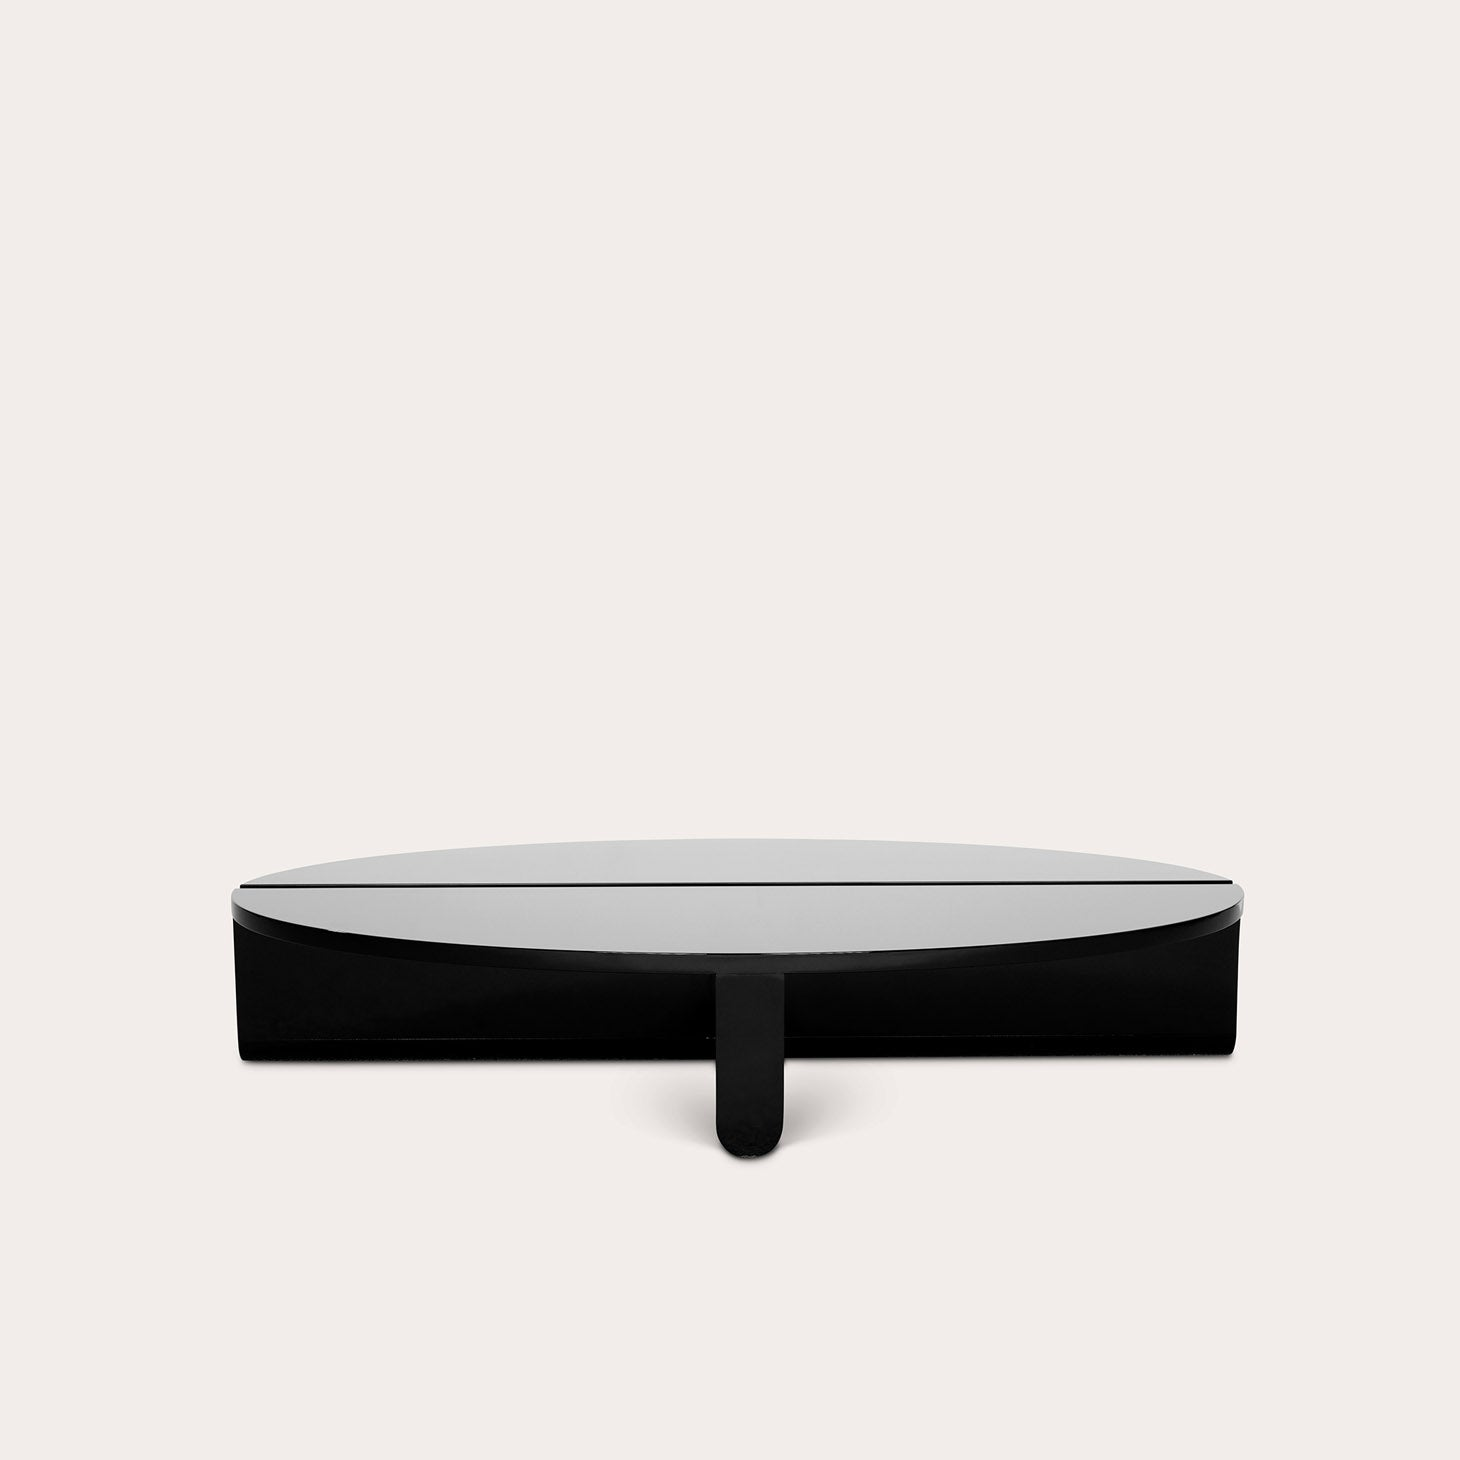 DUP Tables Vincent Dupont-Rougier Designer Furniture Sku: 008-230-10115